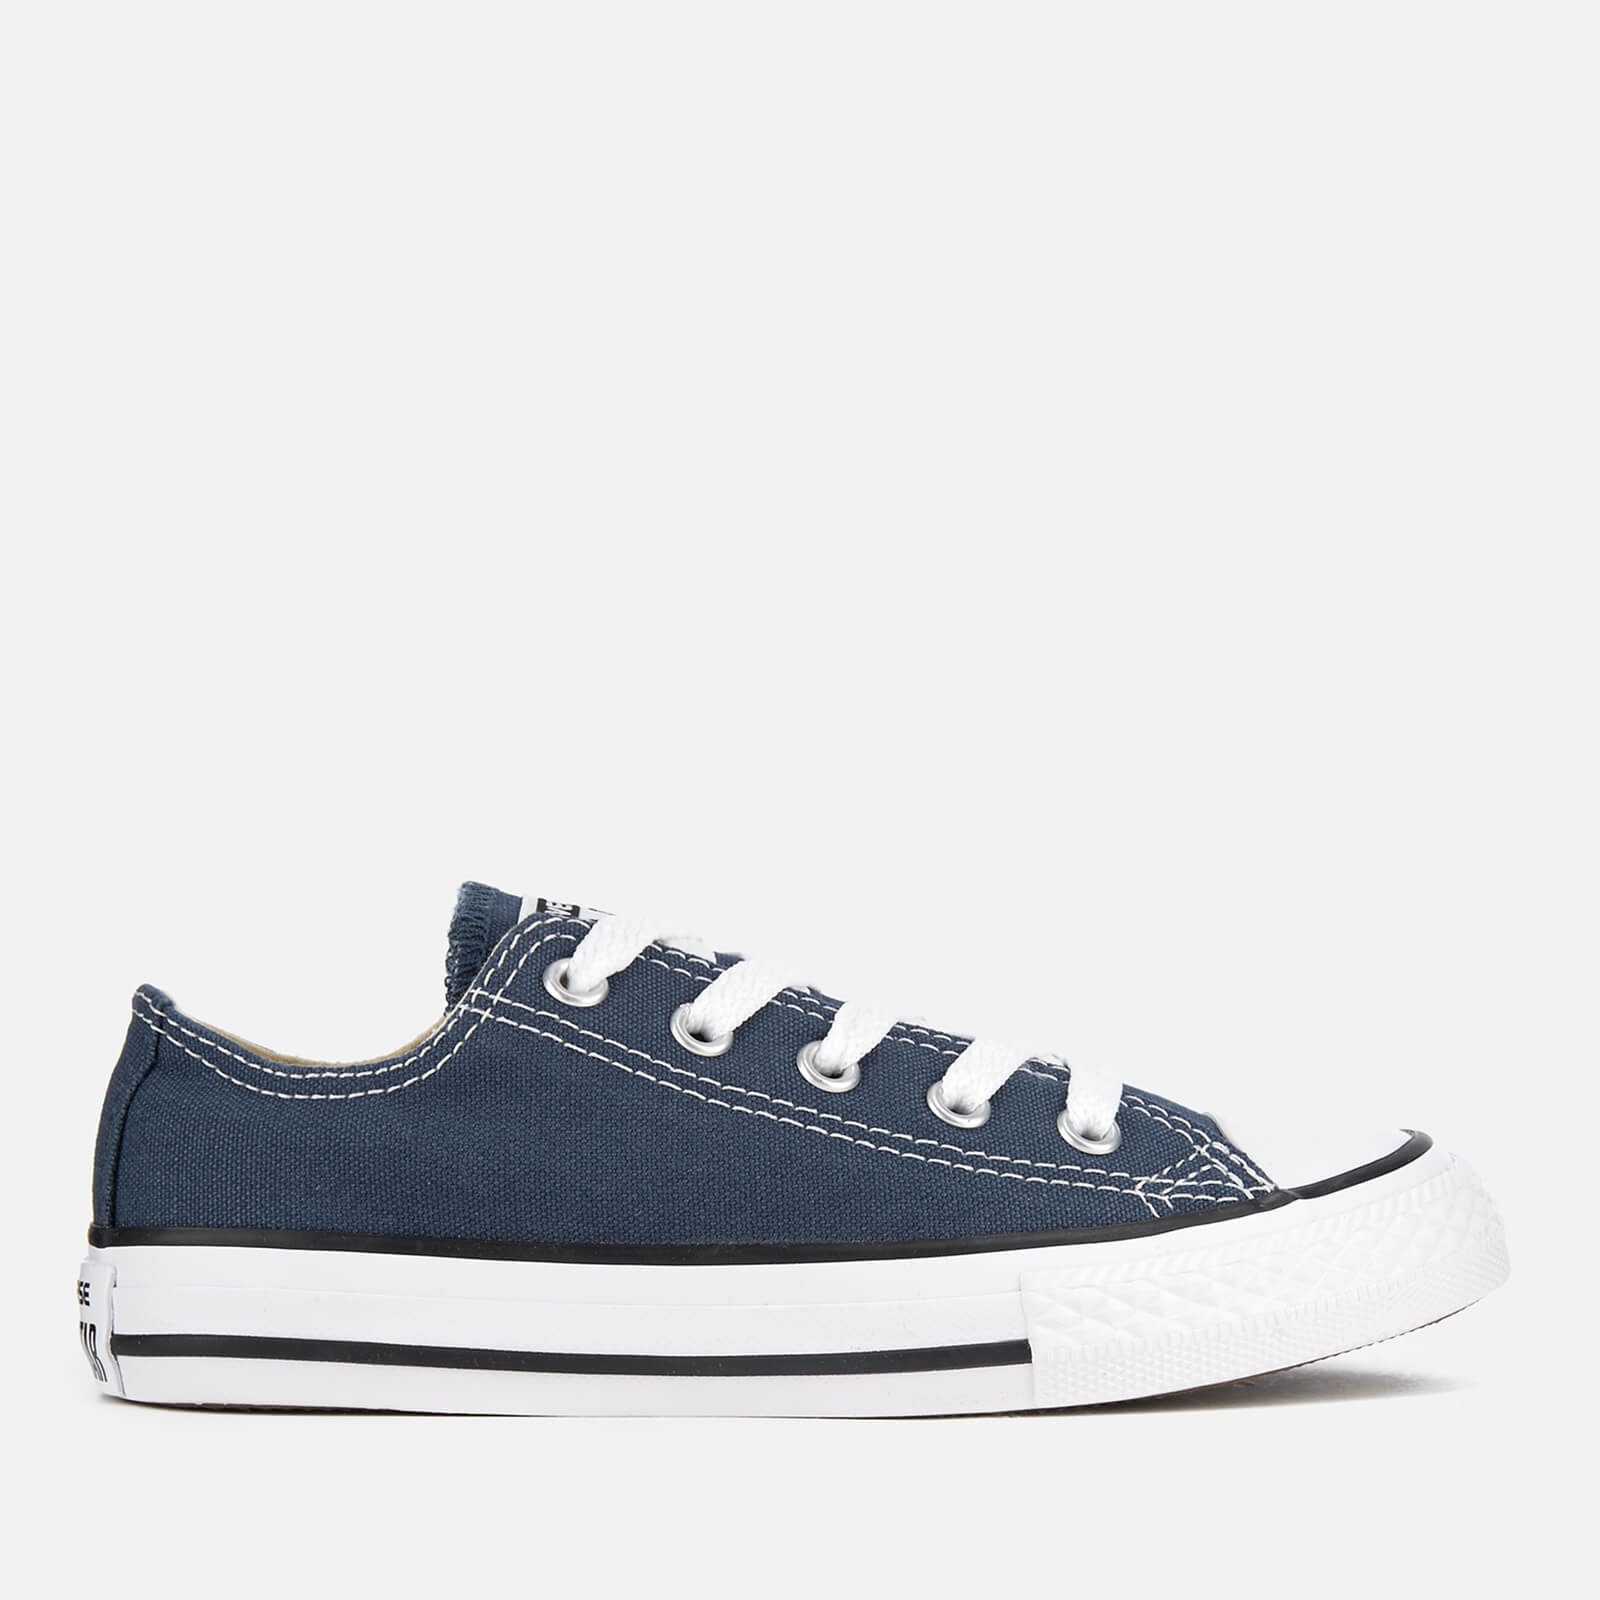 c1f5d6bbb521 Converse Kids Chuck Taylor All Star Ox Trainers - Navy Clothing ...